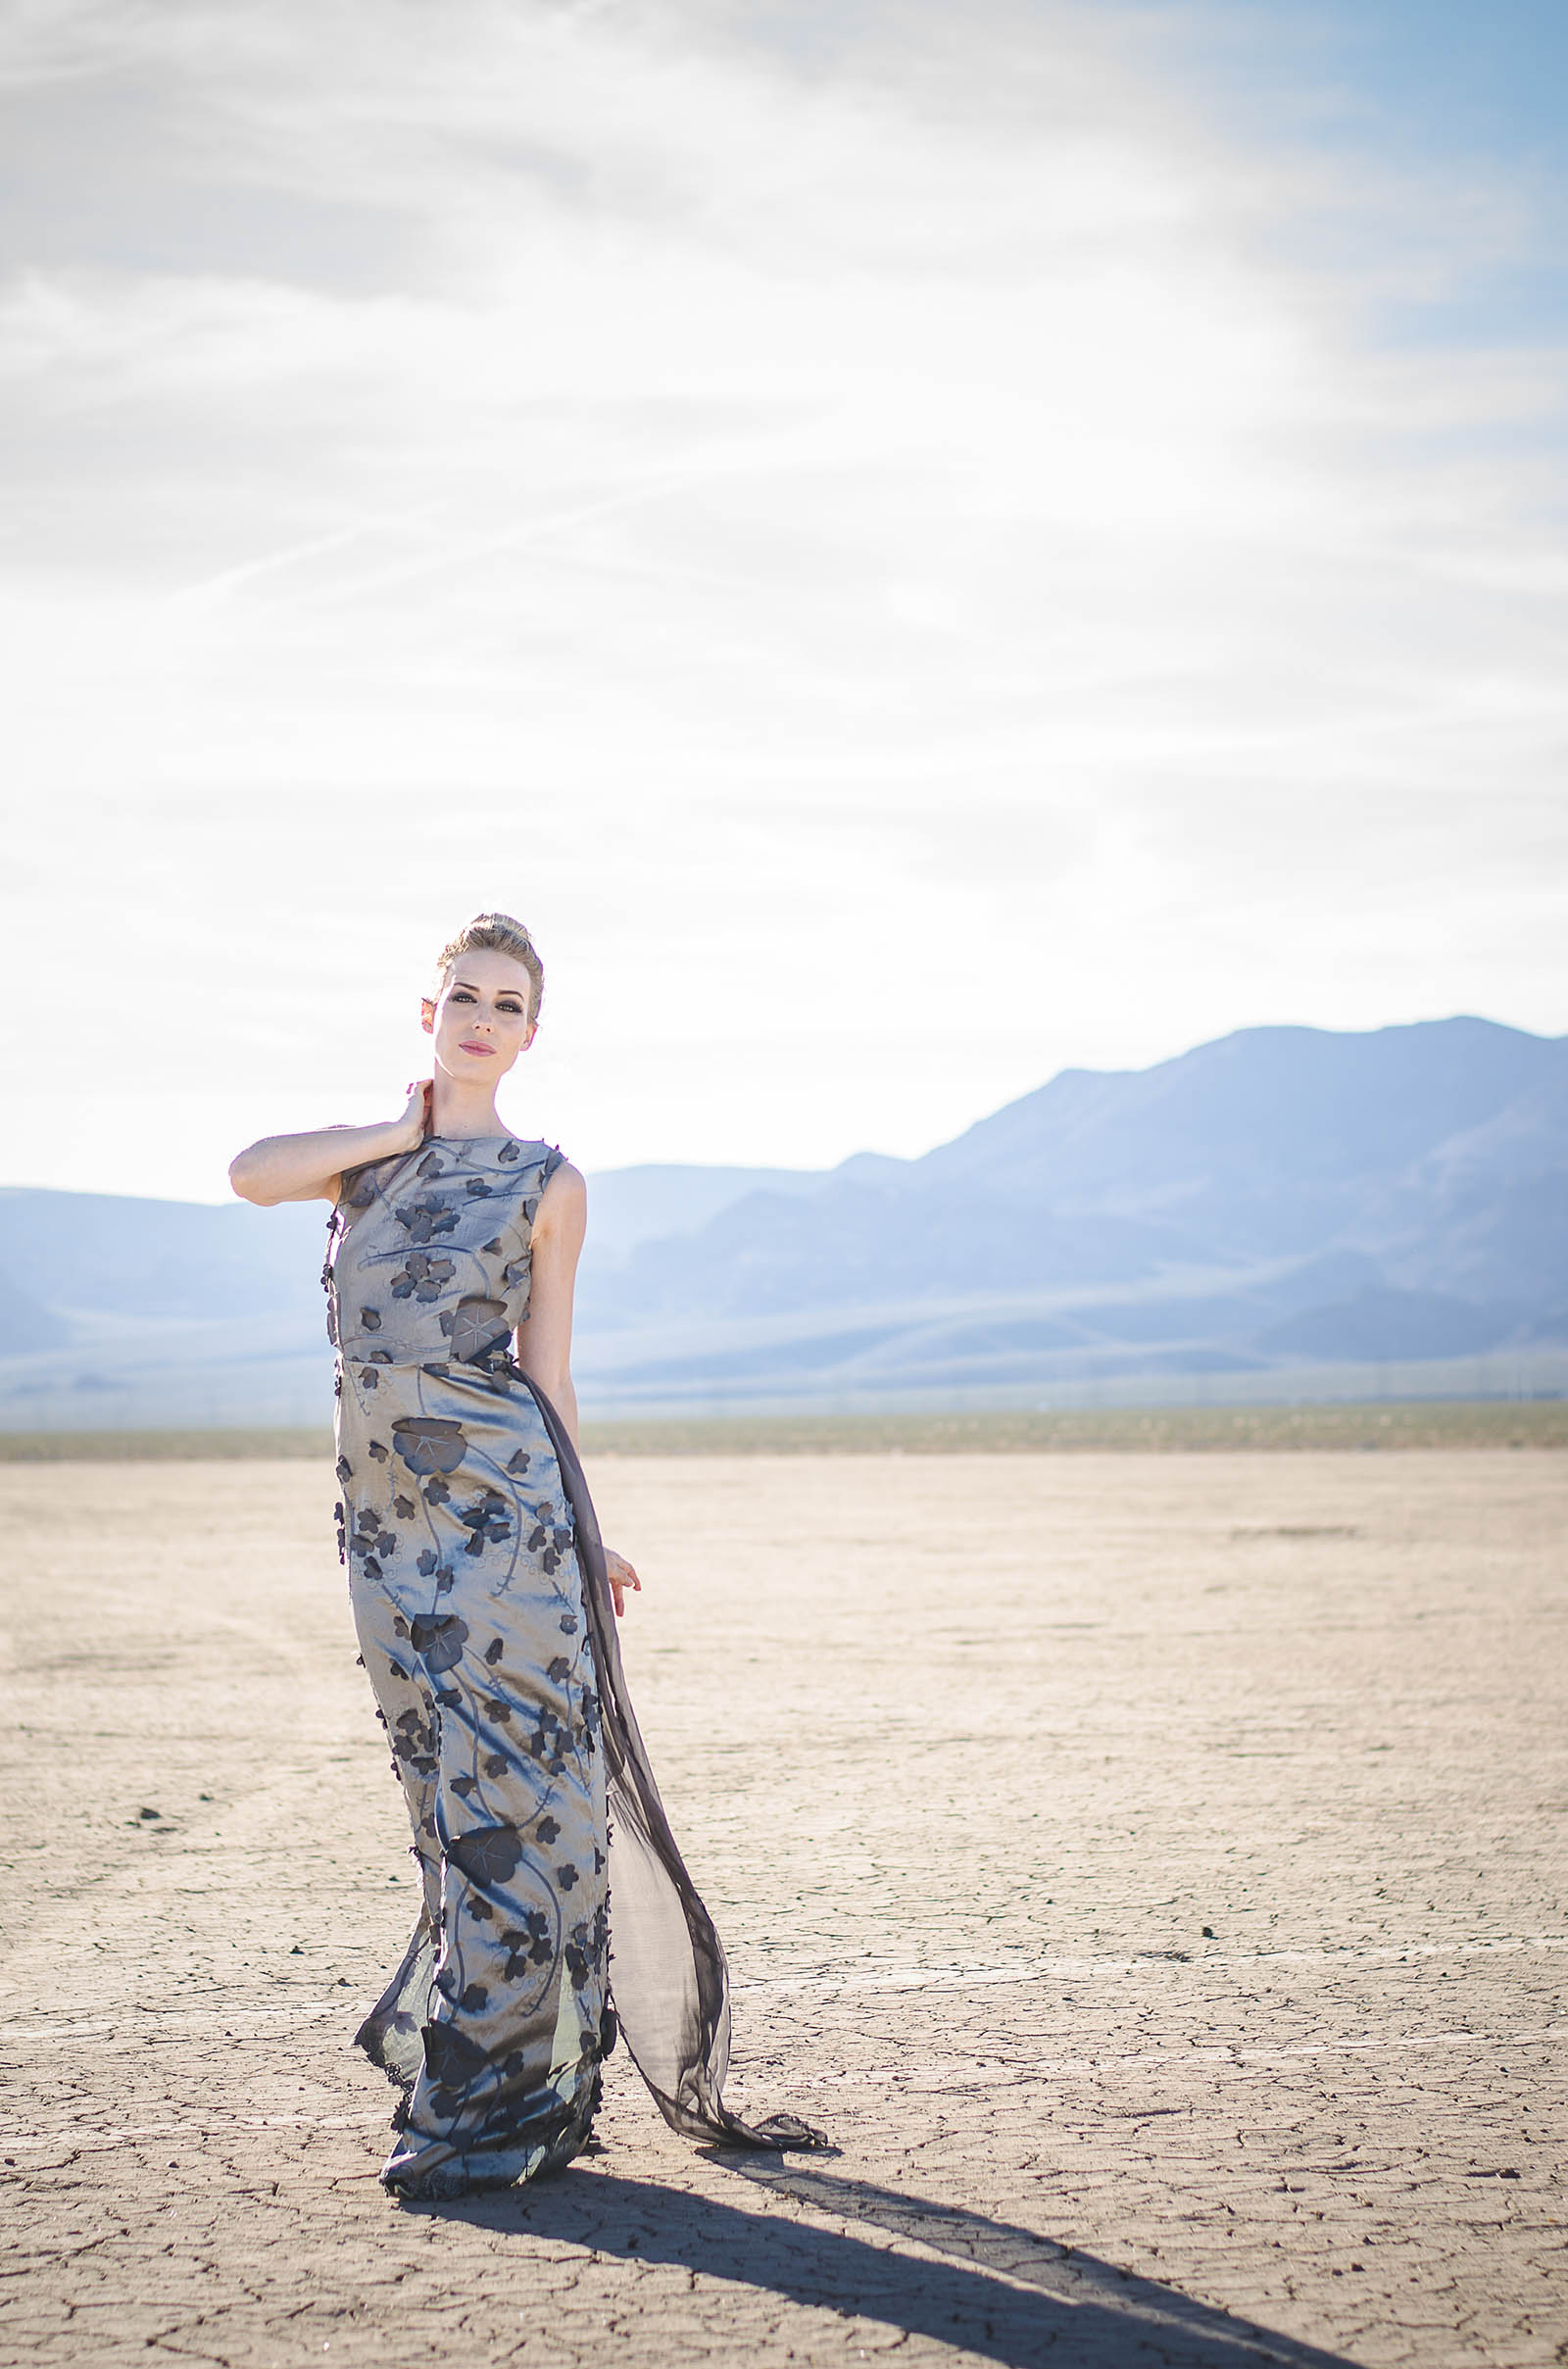 The Dry Lake Bed Chronicles Anjanette Arnold